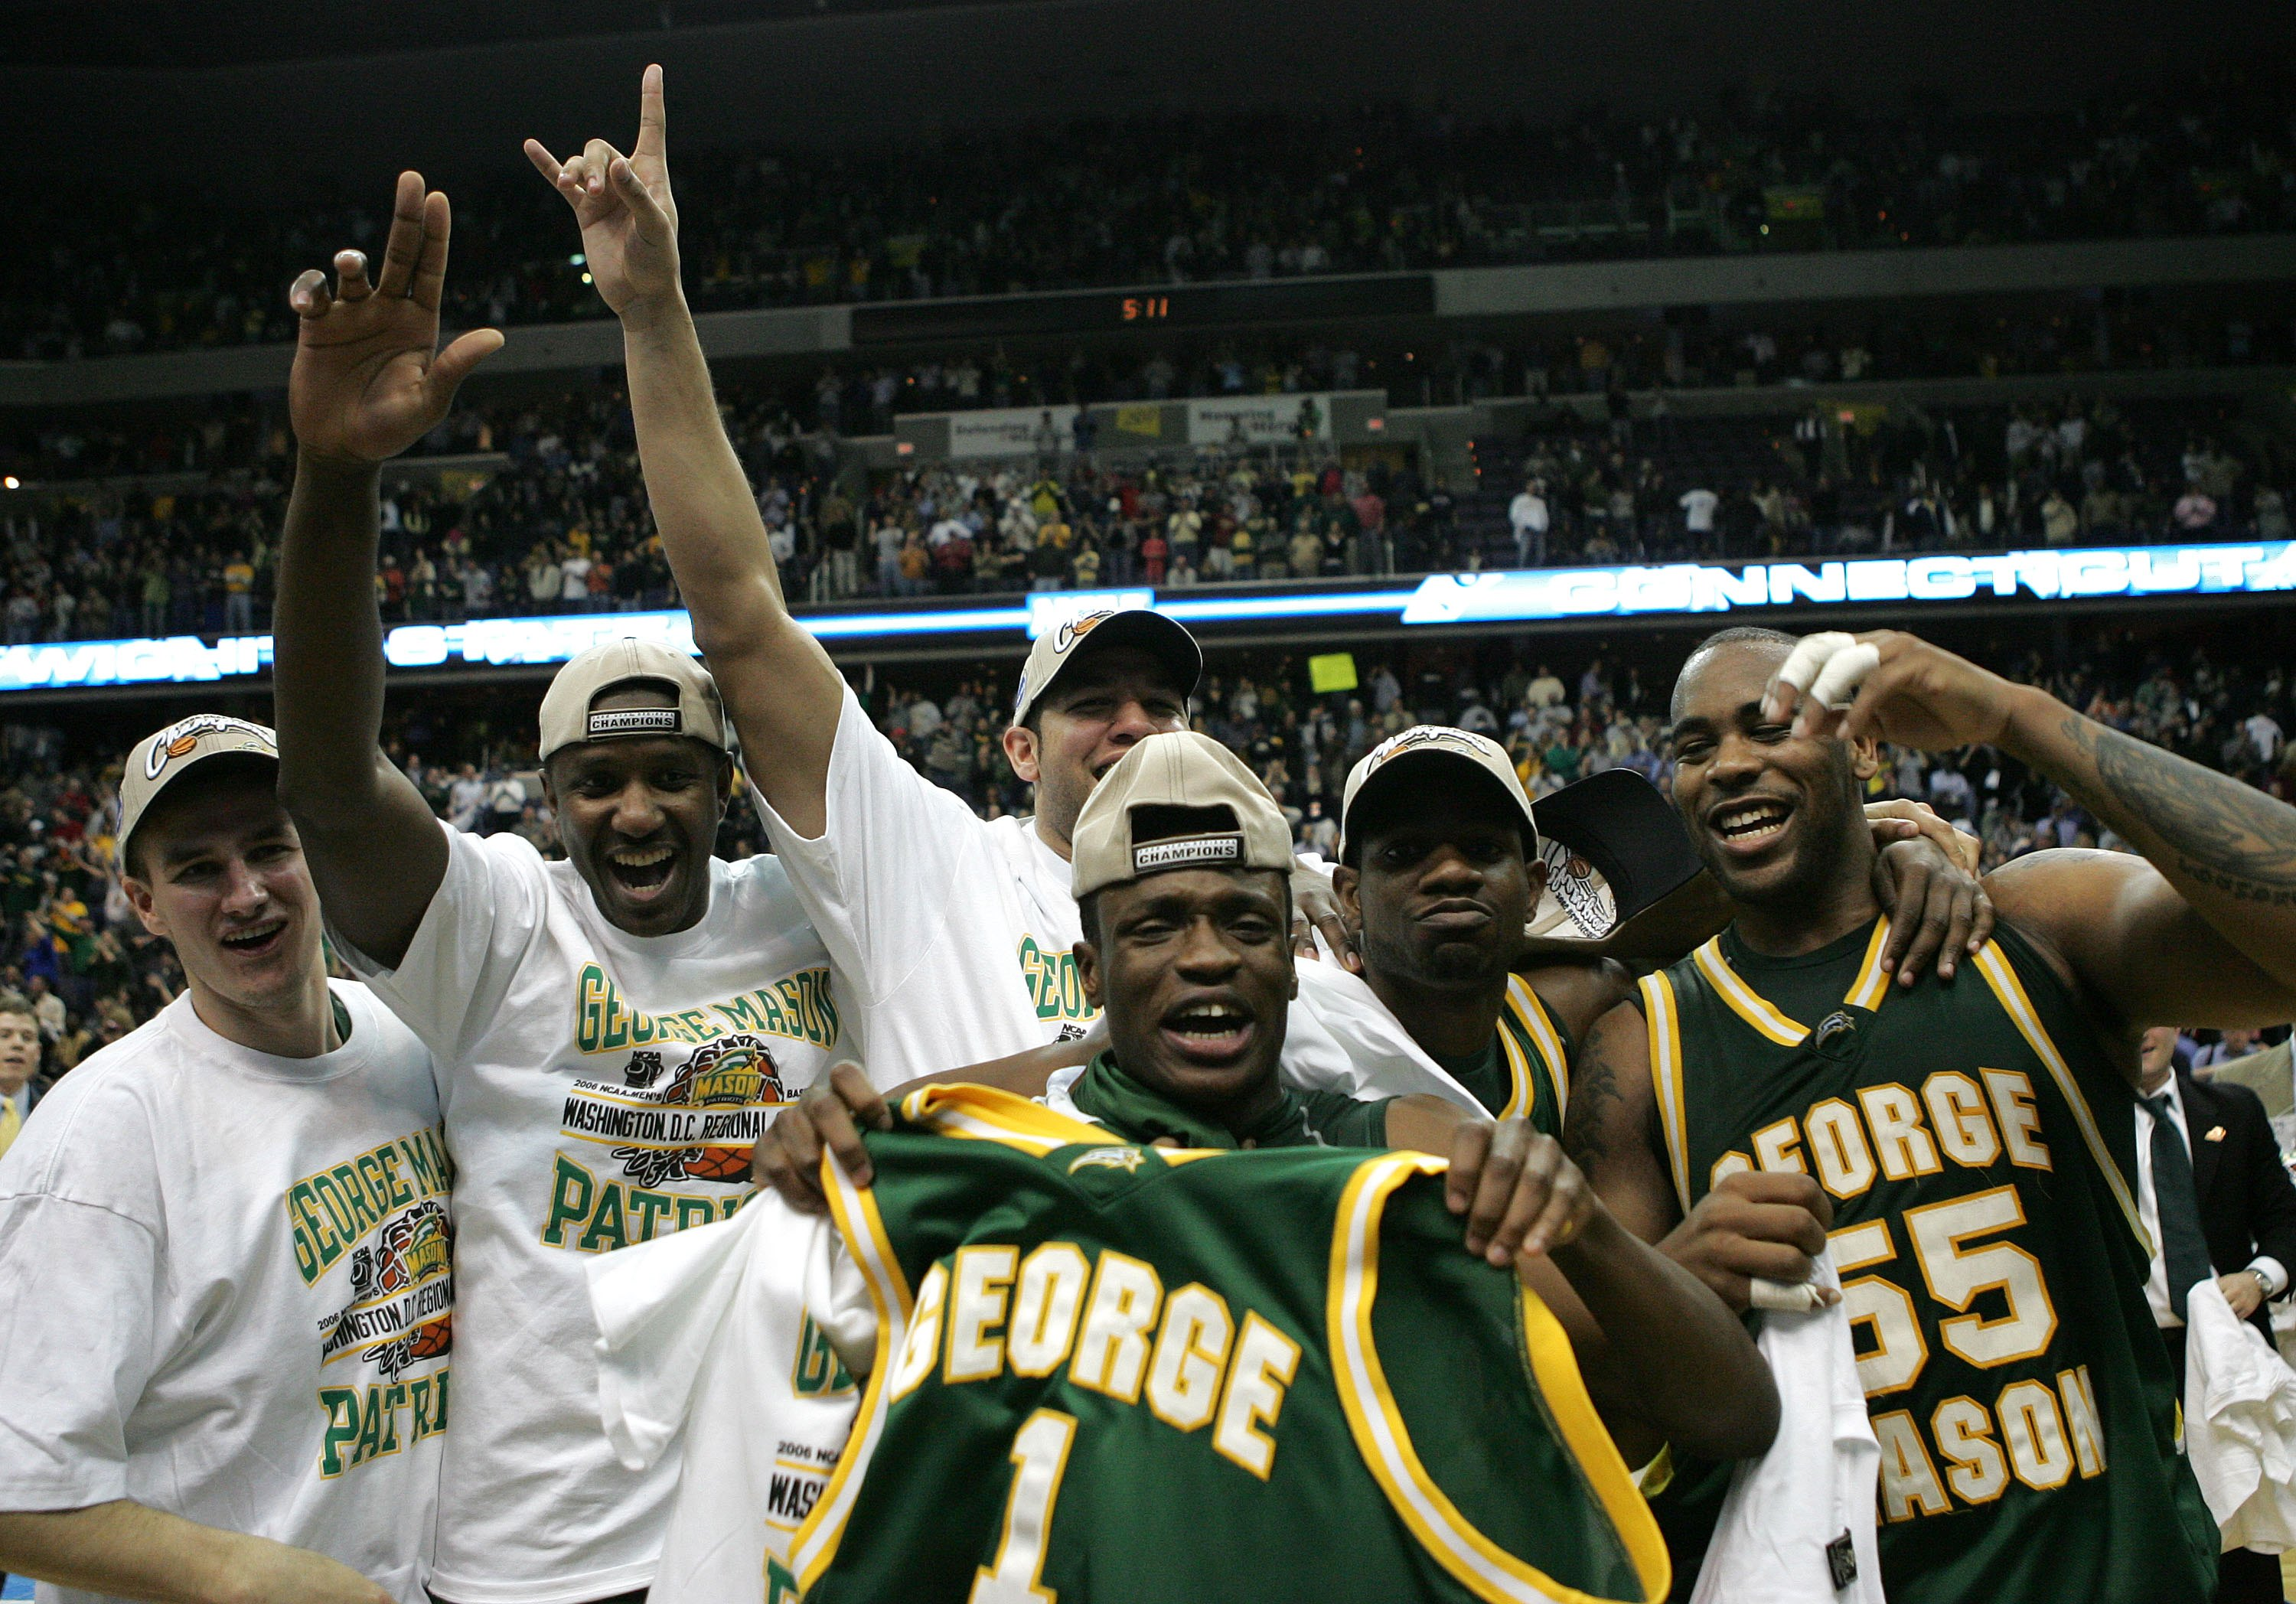 WASHINGTON - MARCH 26:  Tony Skinn #1, Jai Lewis #55 and their teammates celebrate thier win over the Connecticut Huskies during the Regional Finals of the NCAA Men's Basketball Tournament on March 26, 2006 at the Verizon Center in Washington DC. The Geor